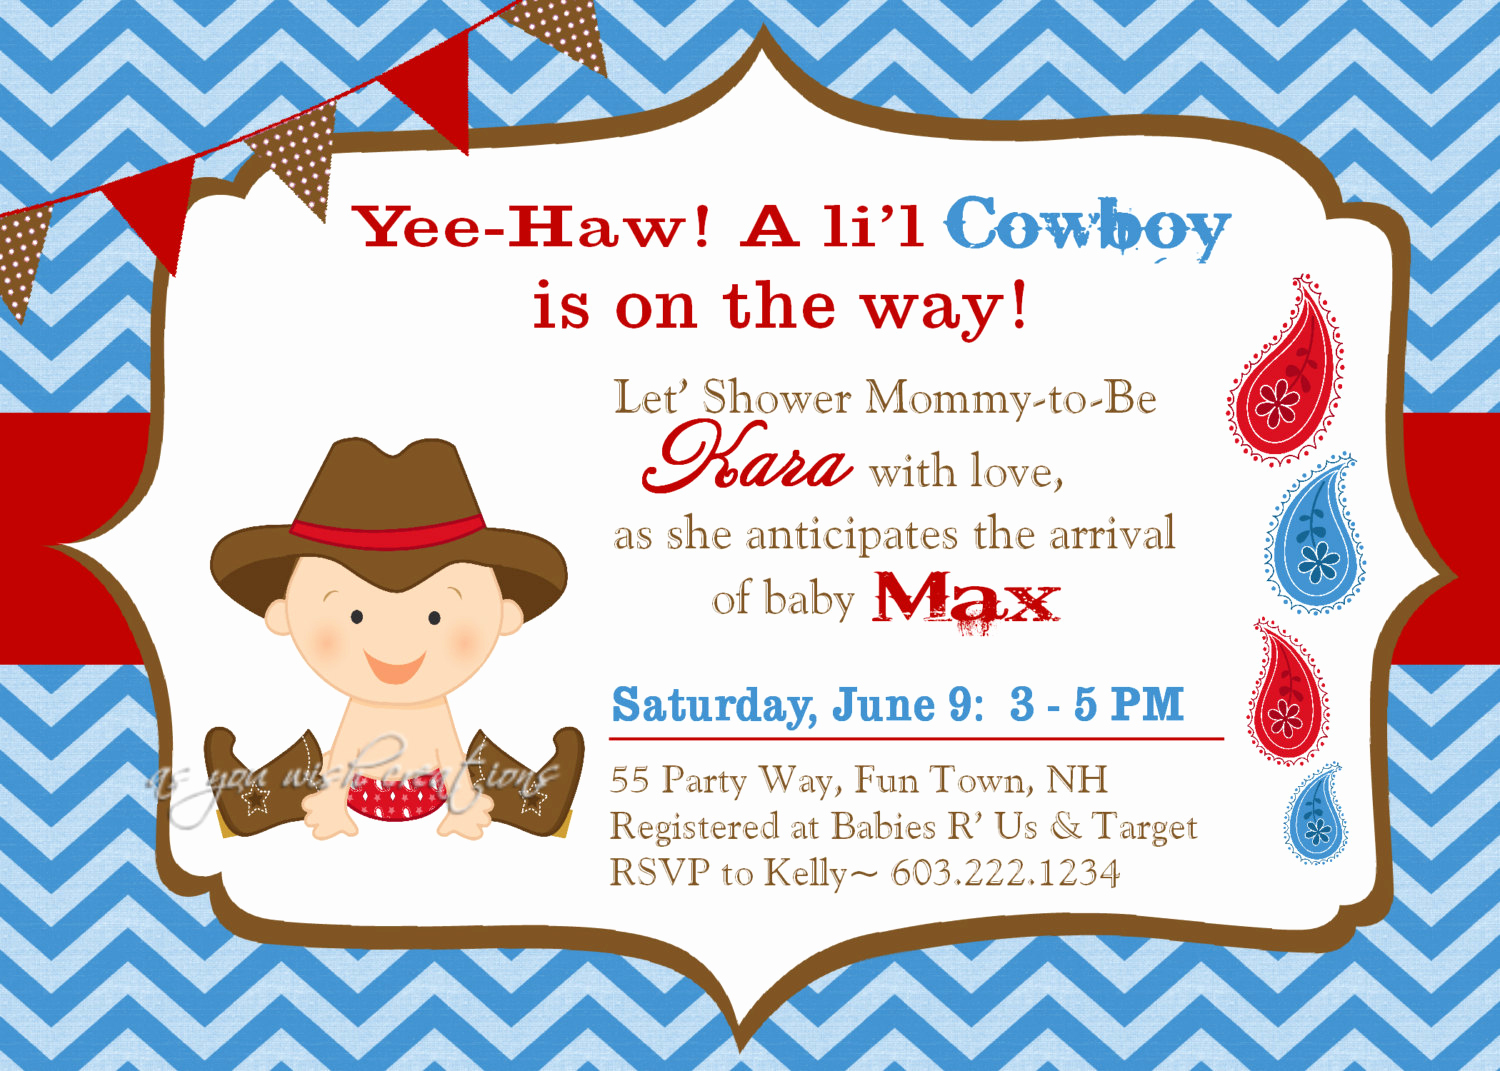 Western Baby Shower Invitation Luxury Cowboy Baby Shower Invitation Boy Invitation Cowboy Shower